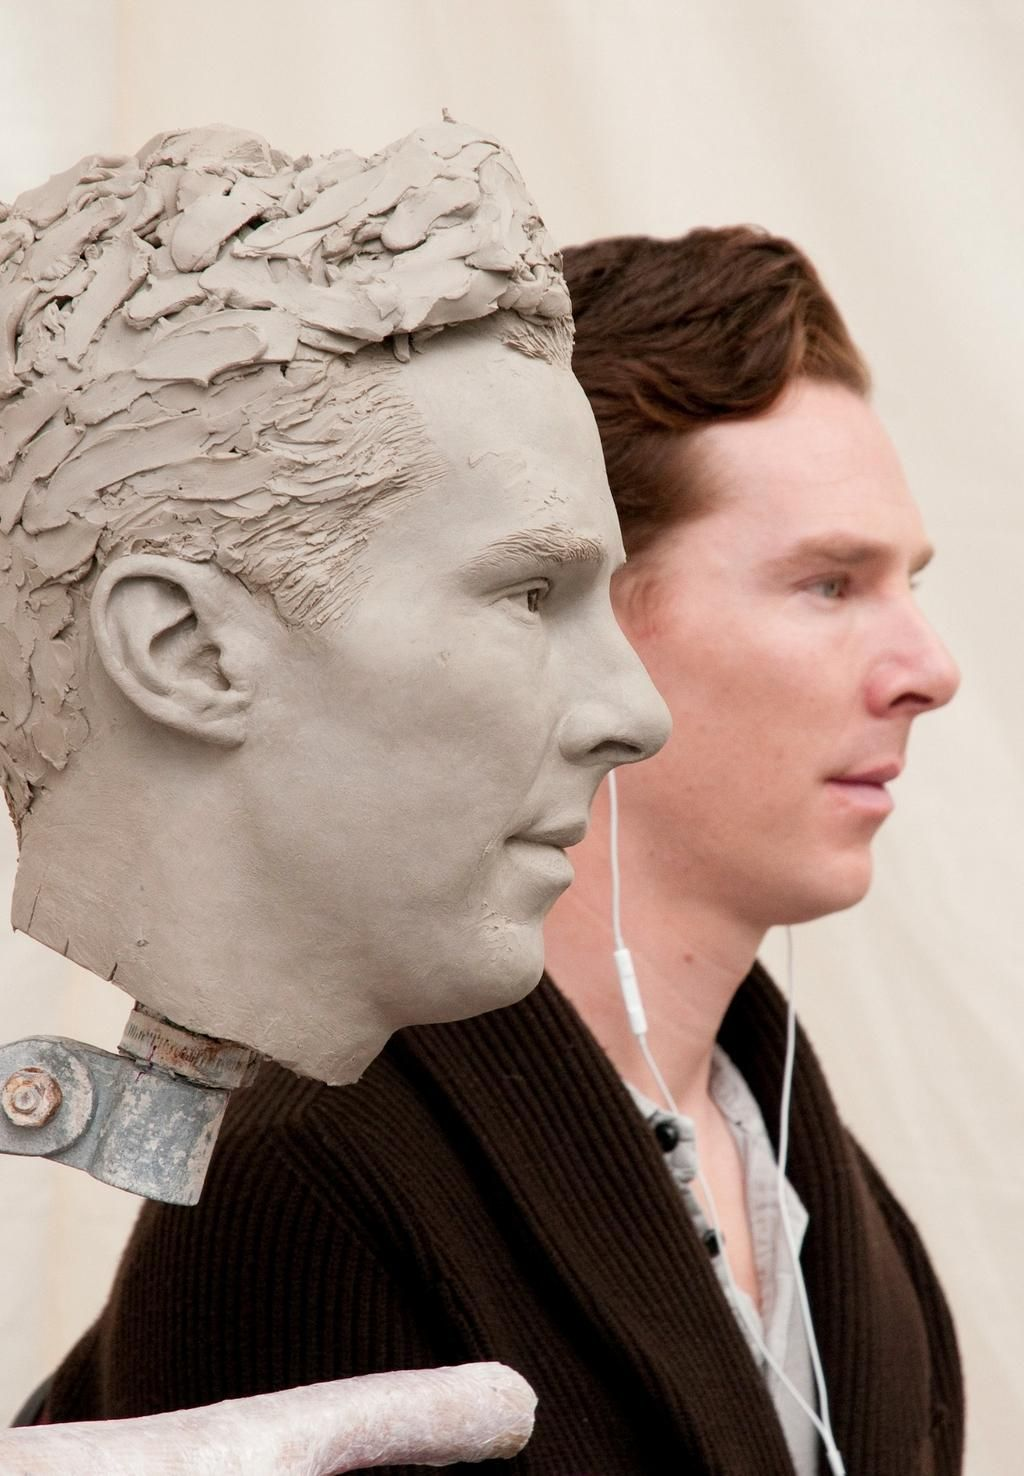 Loving this picture of Benedict Cumberbatch and his waxwork @TussaudsLondon, via @RadioTimes pic.twitter.com/Pw7MwcFgjf